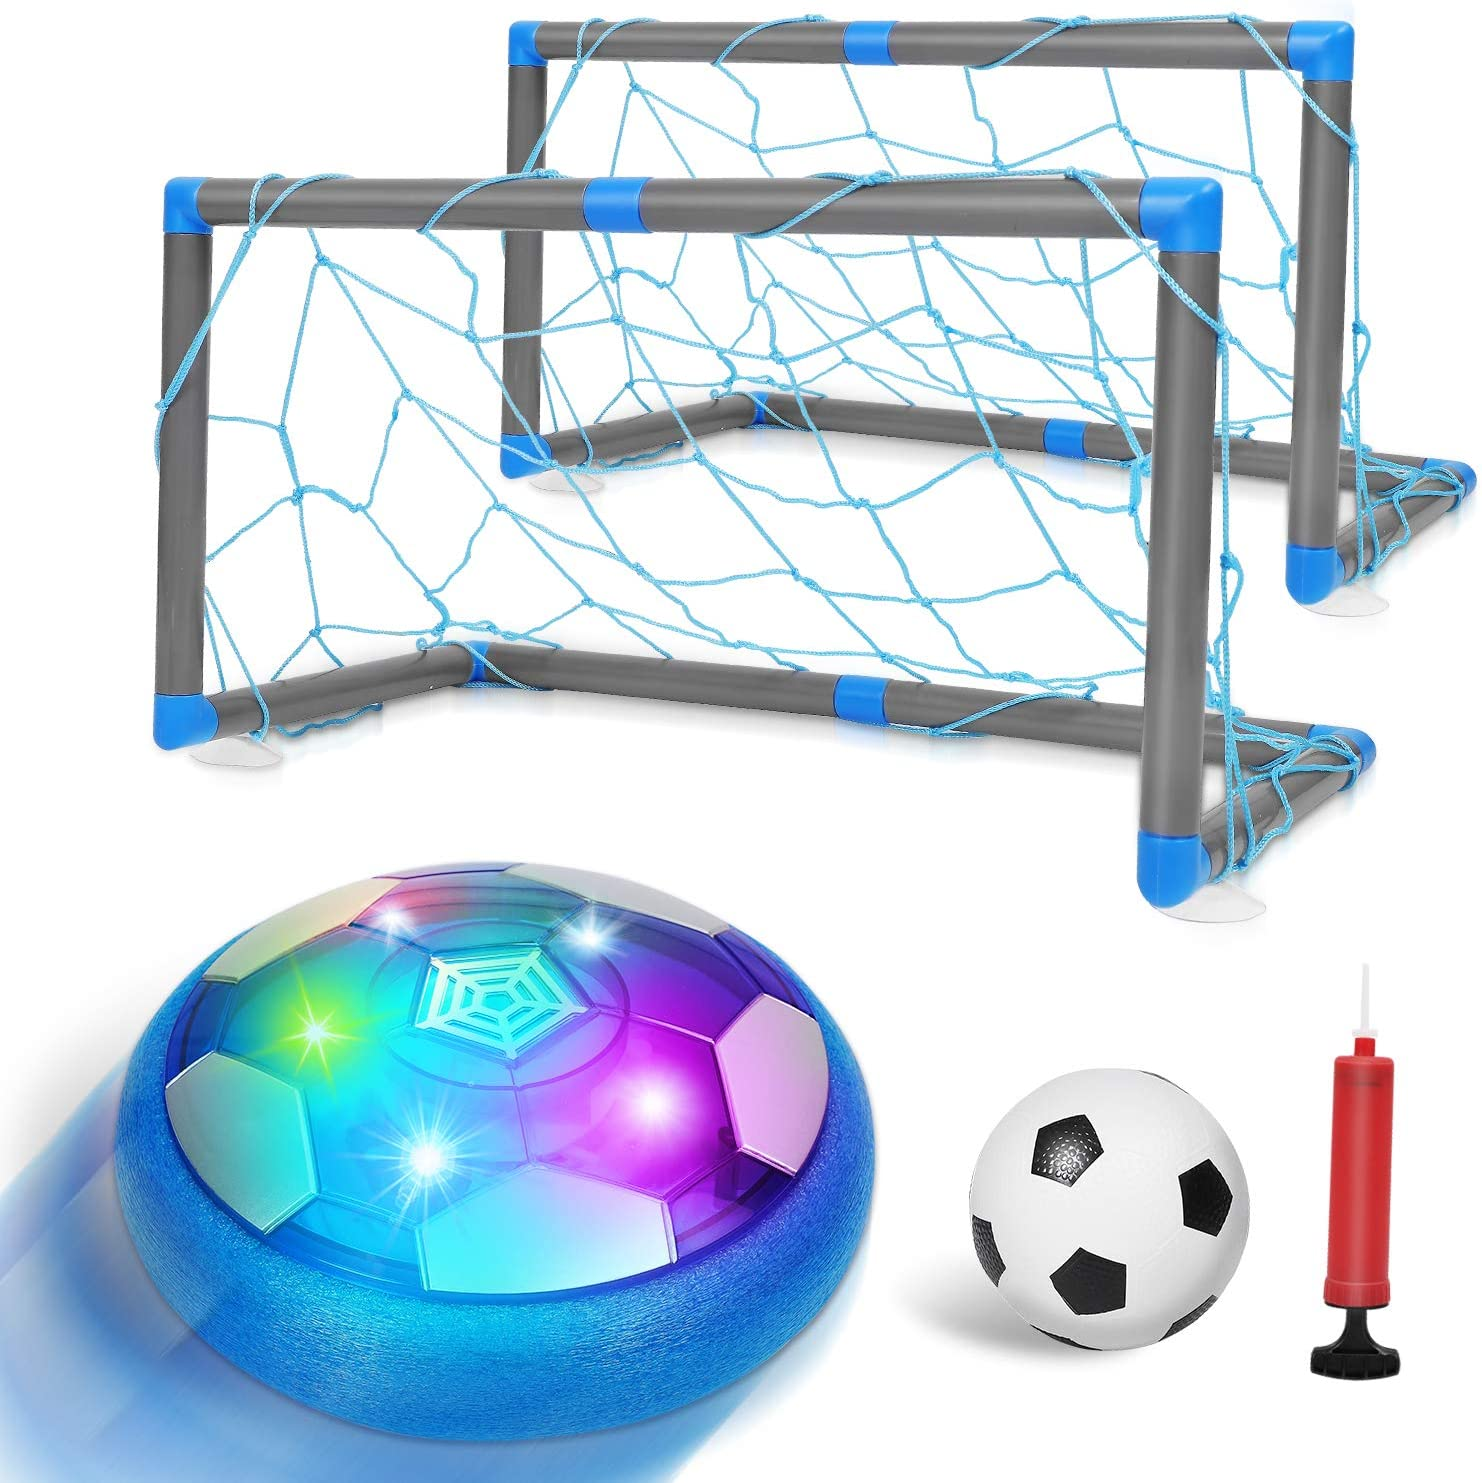 Auney Kids Hover Soccer Toy Ball Set with 2 Goals, Rechargeable Air Soccer with LED Light and Foam Bumper Included Inflatable Ball, Indoor Training Football Game for Boys Girls: Toys & Games